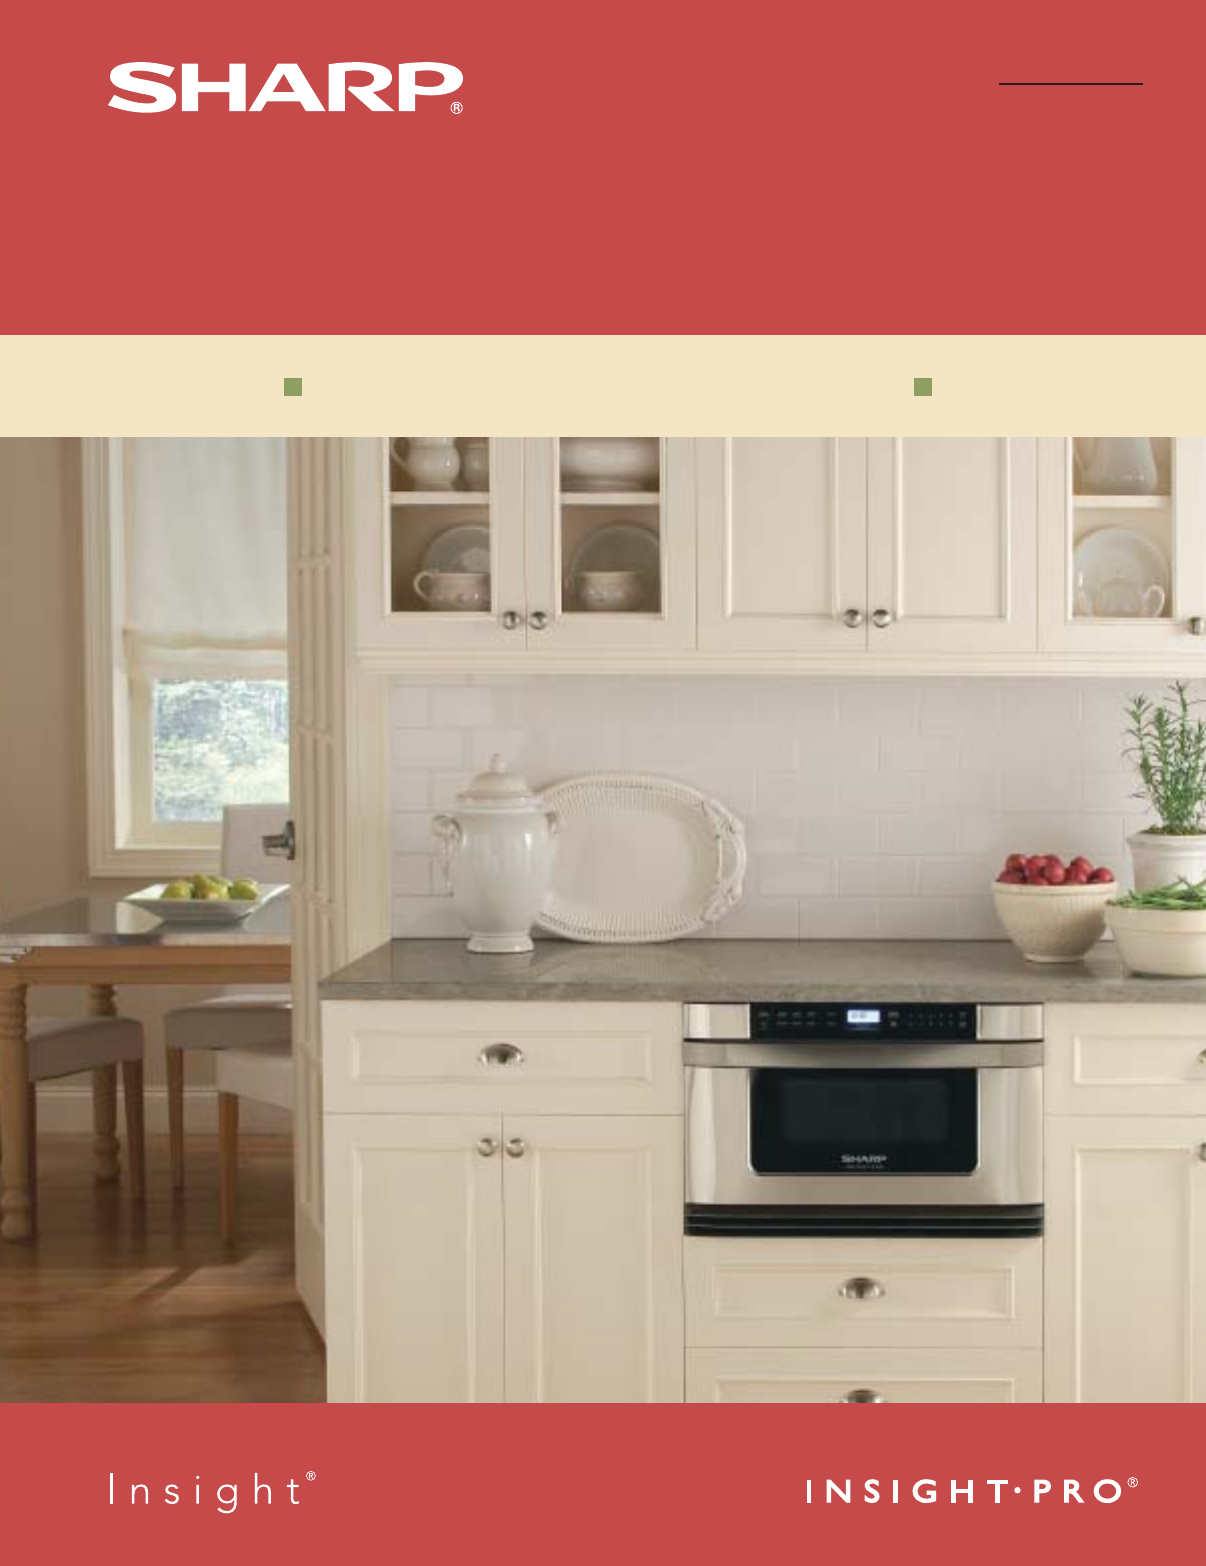 range drawer forhome styles kitchen b sharp black section has to widest stainless designed steel and of models homeappliances been microwave microwaves design oven the complement appliances